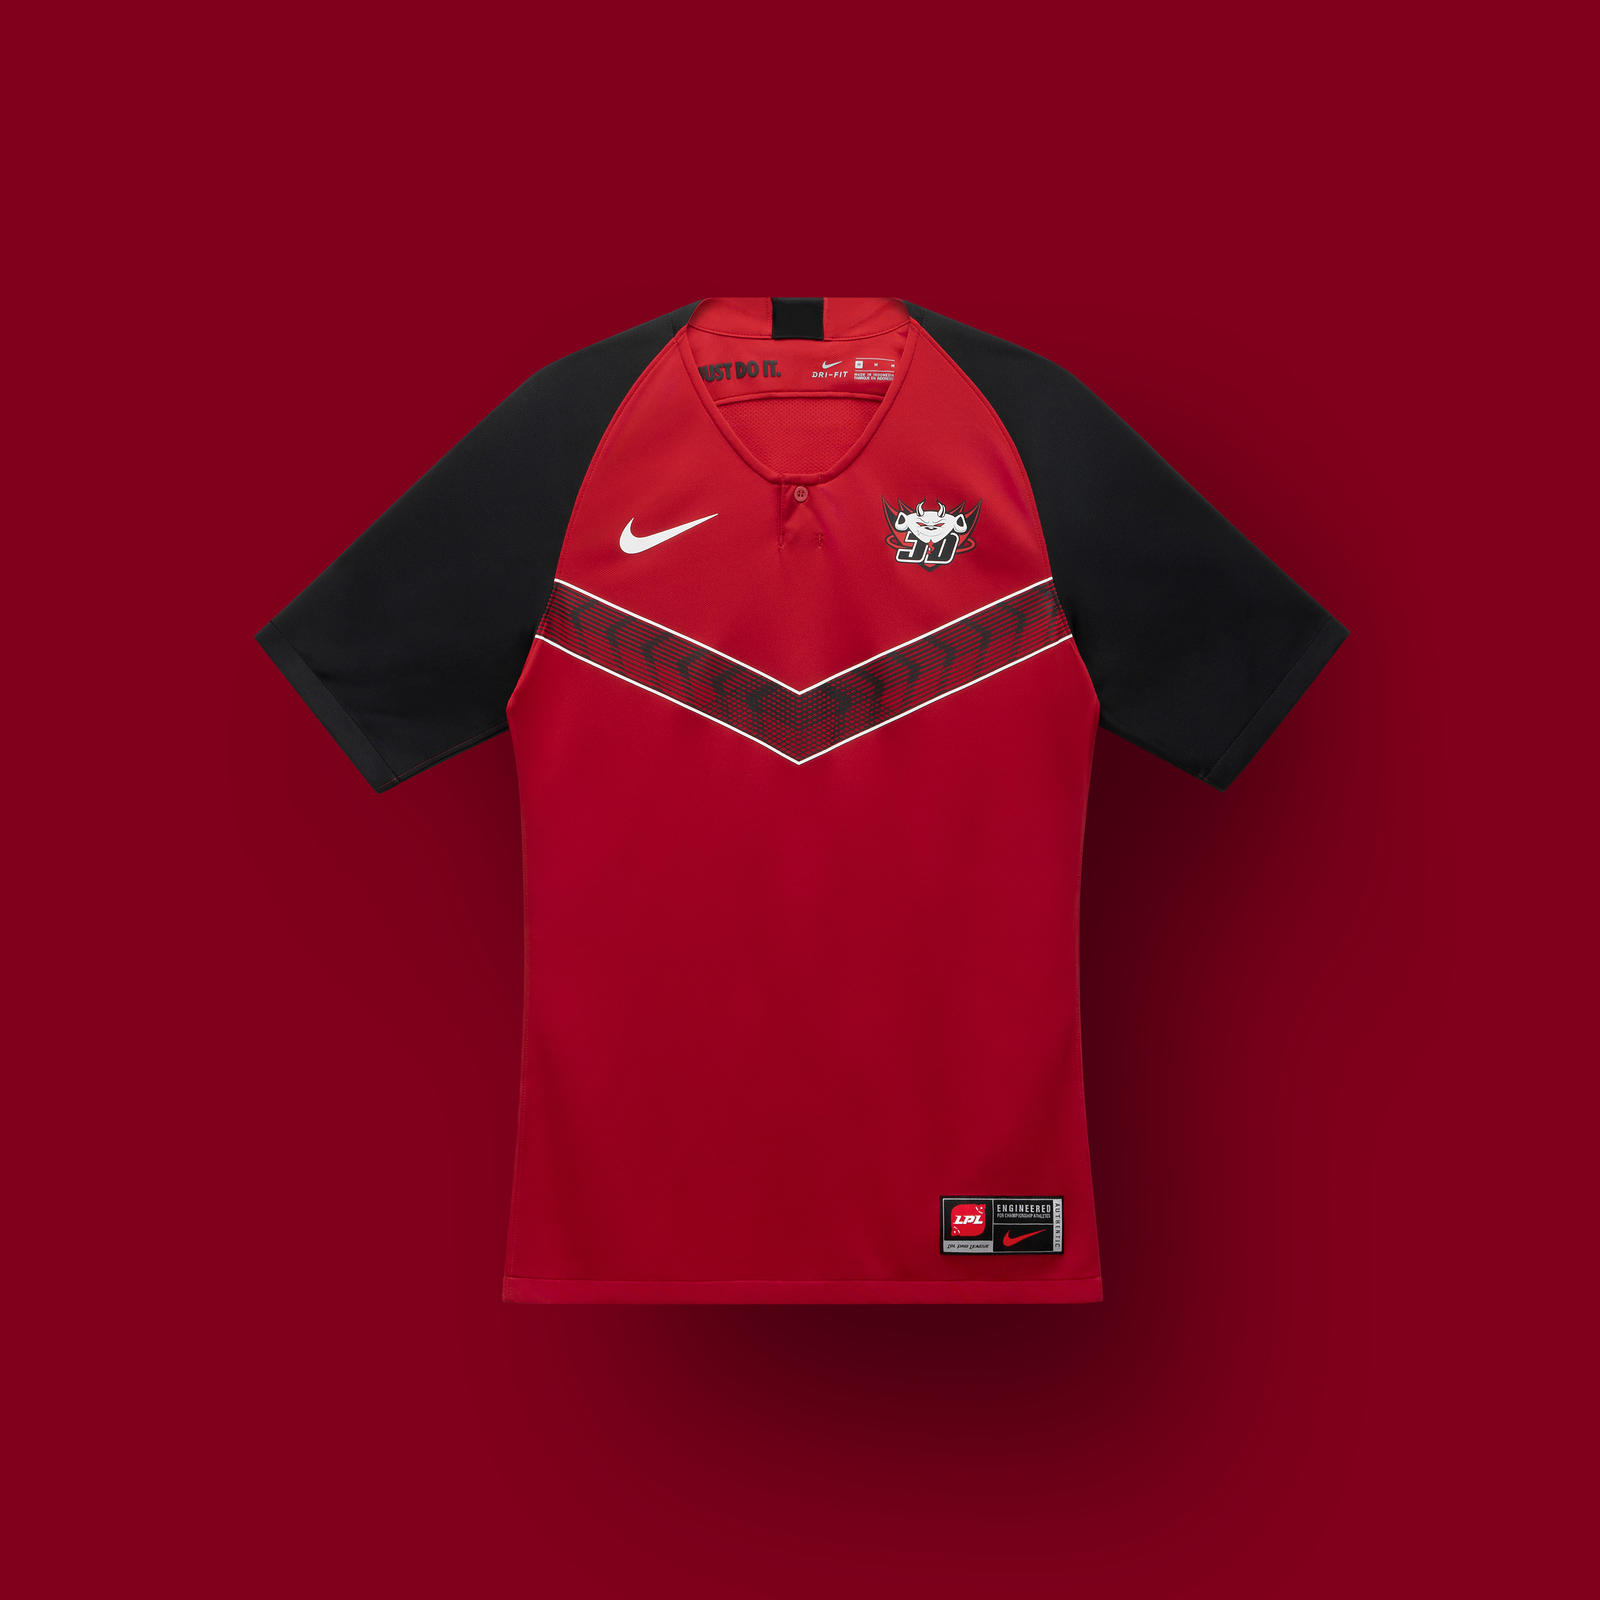 Nike League of Legends Pro League Team Kits 2019-20 Official Images 41